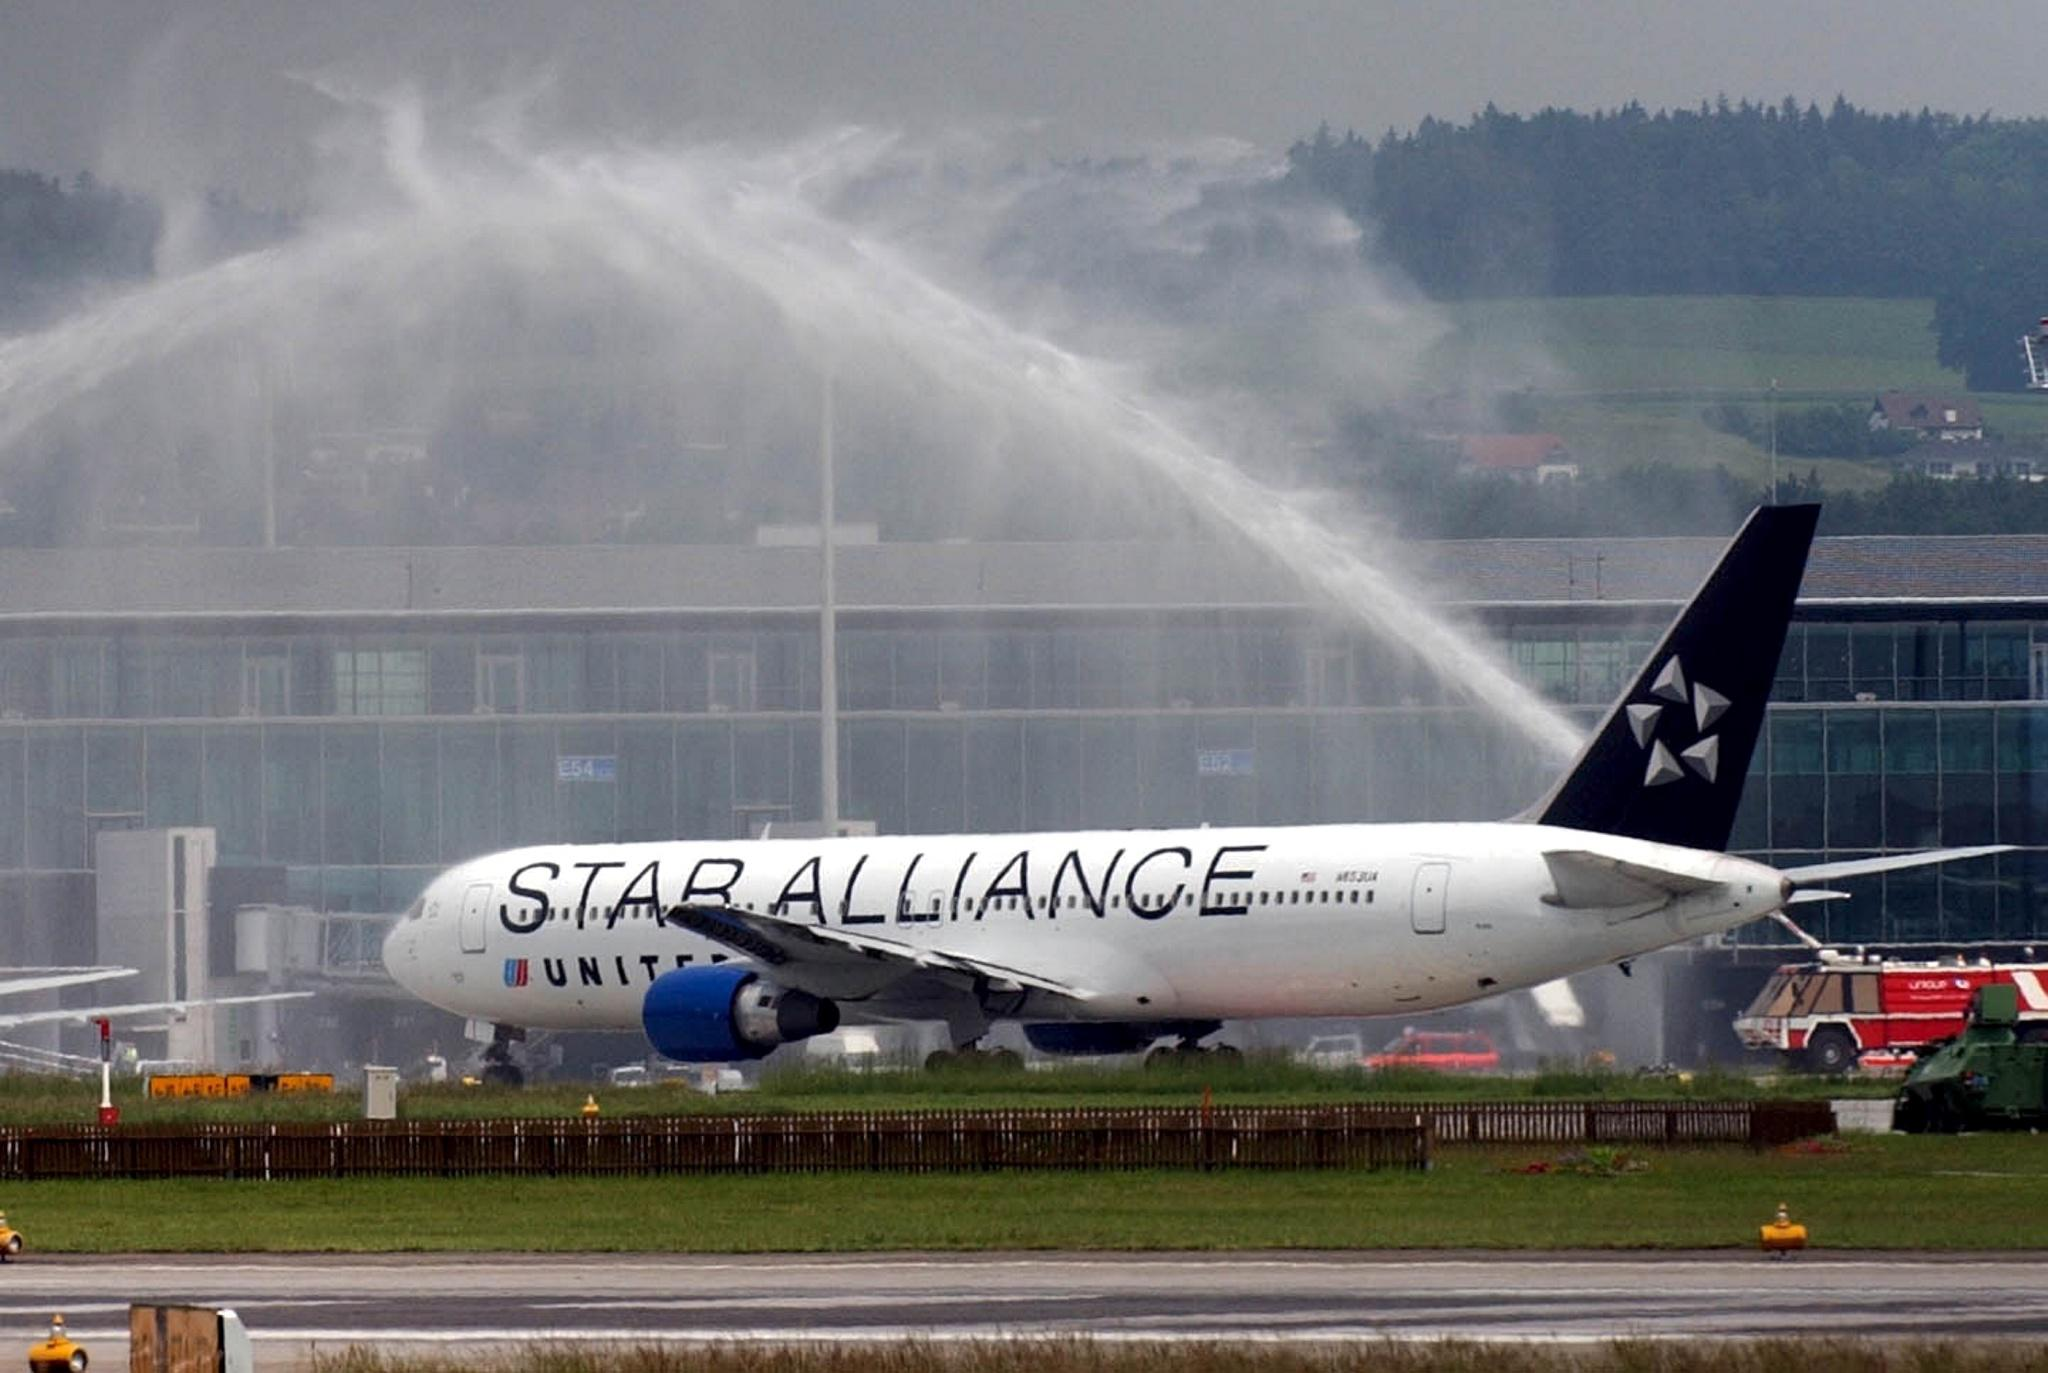 Starting February 1, 2014, United MileagePlus members are going to need a lot more miles to fly business or first class on a Star Alliance partner. (credit: AP Image)